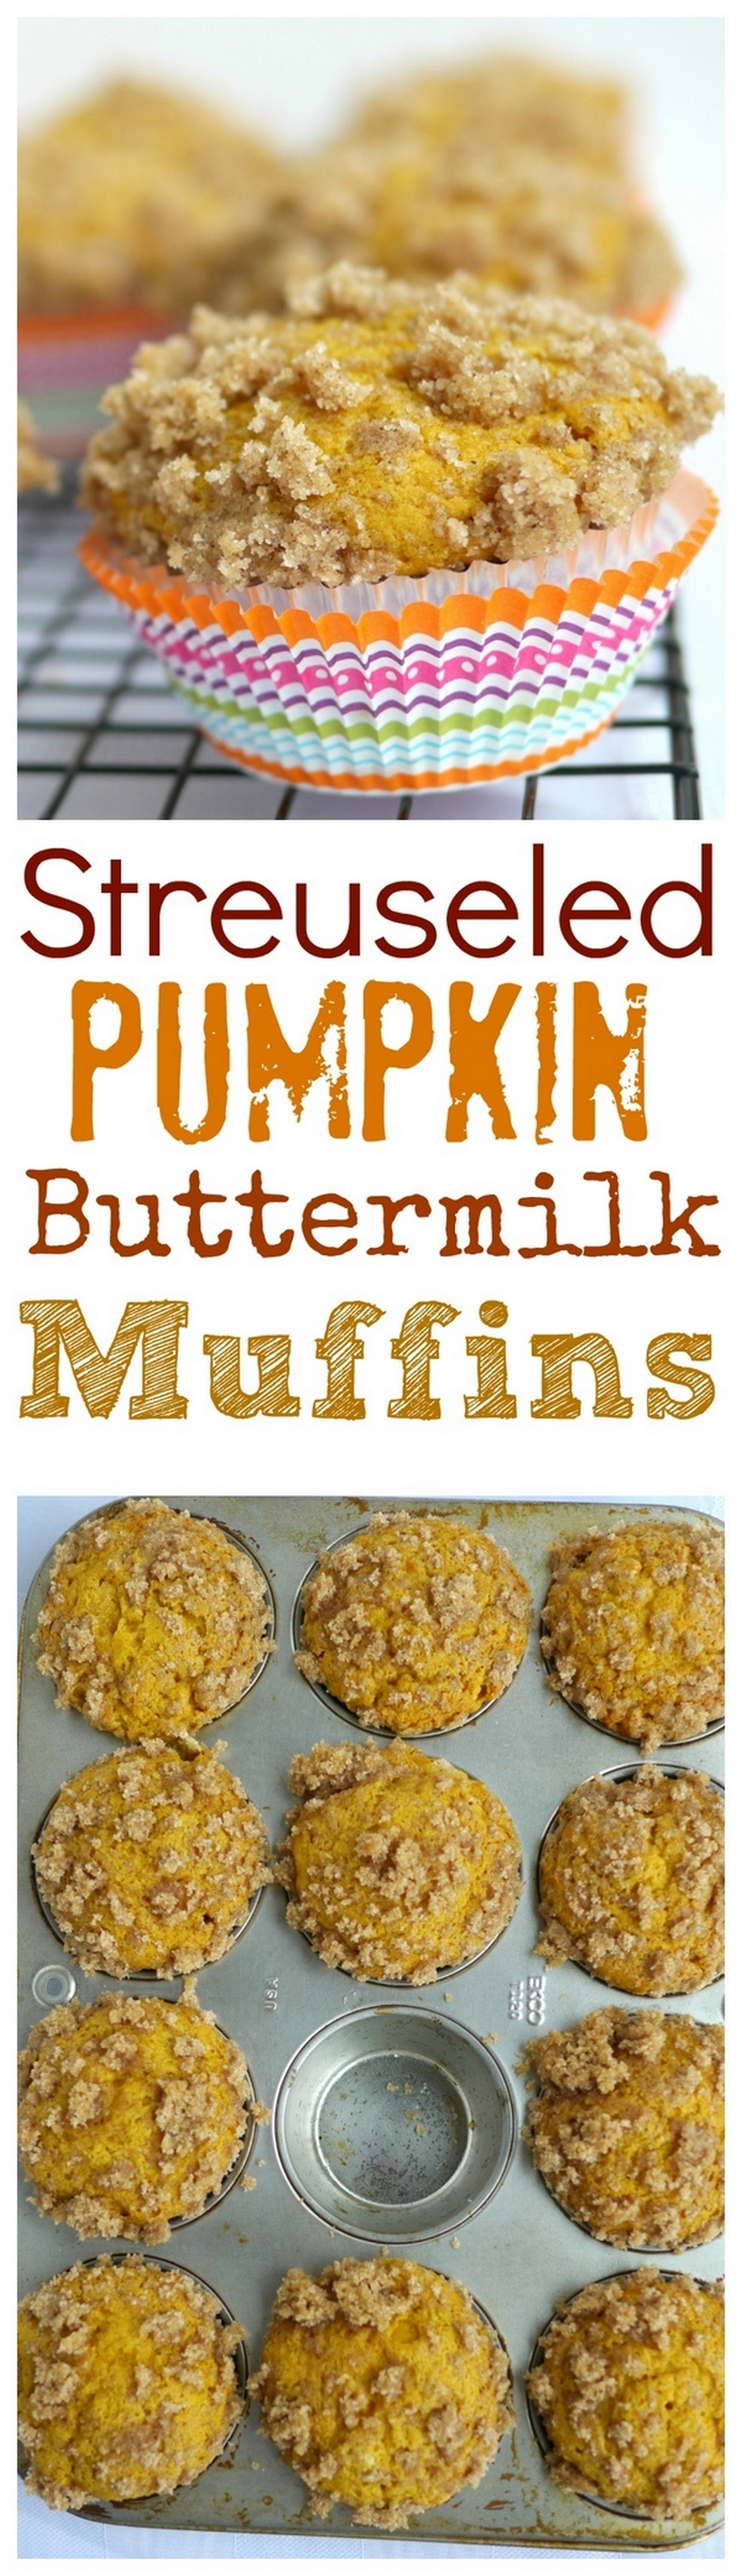 These Streuseled Pumpkin Buttermilk Muffins are the perfect answer to a Fall season breakfast. Tangy, moist and with big hunks of crunchy streusel, I can't think of a better way to enjoy my morning cup of coffee. #pumpkinmuffins via @cmpollak1